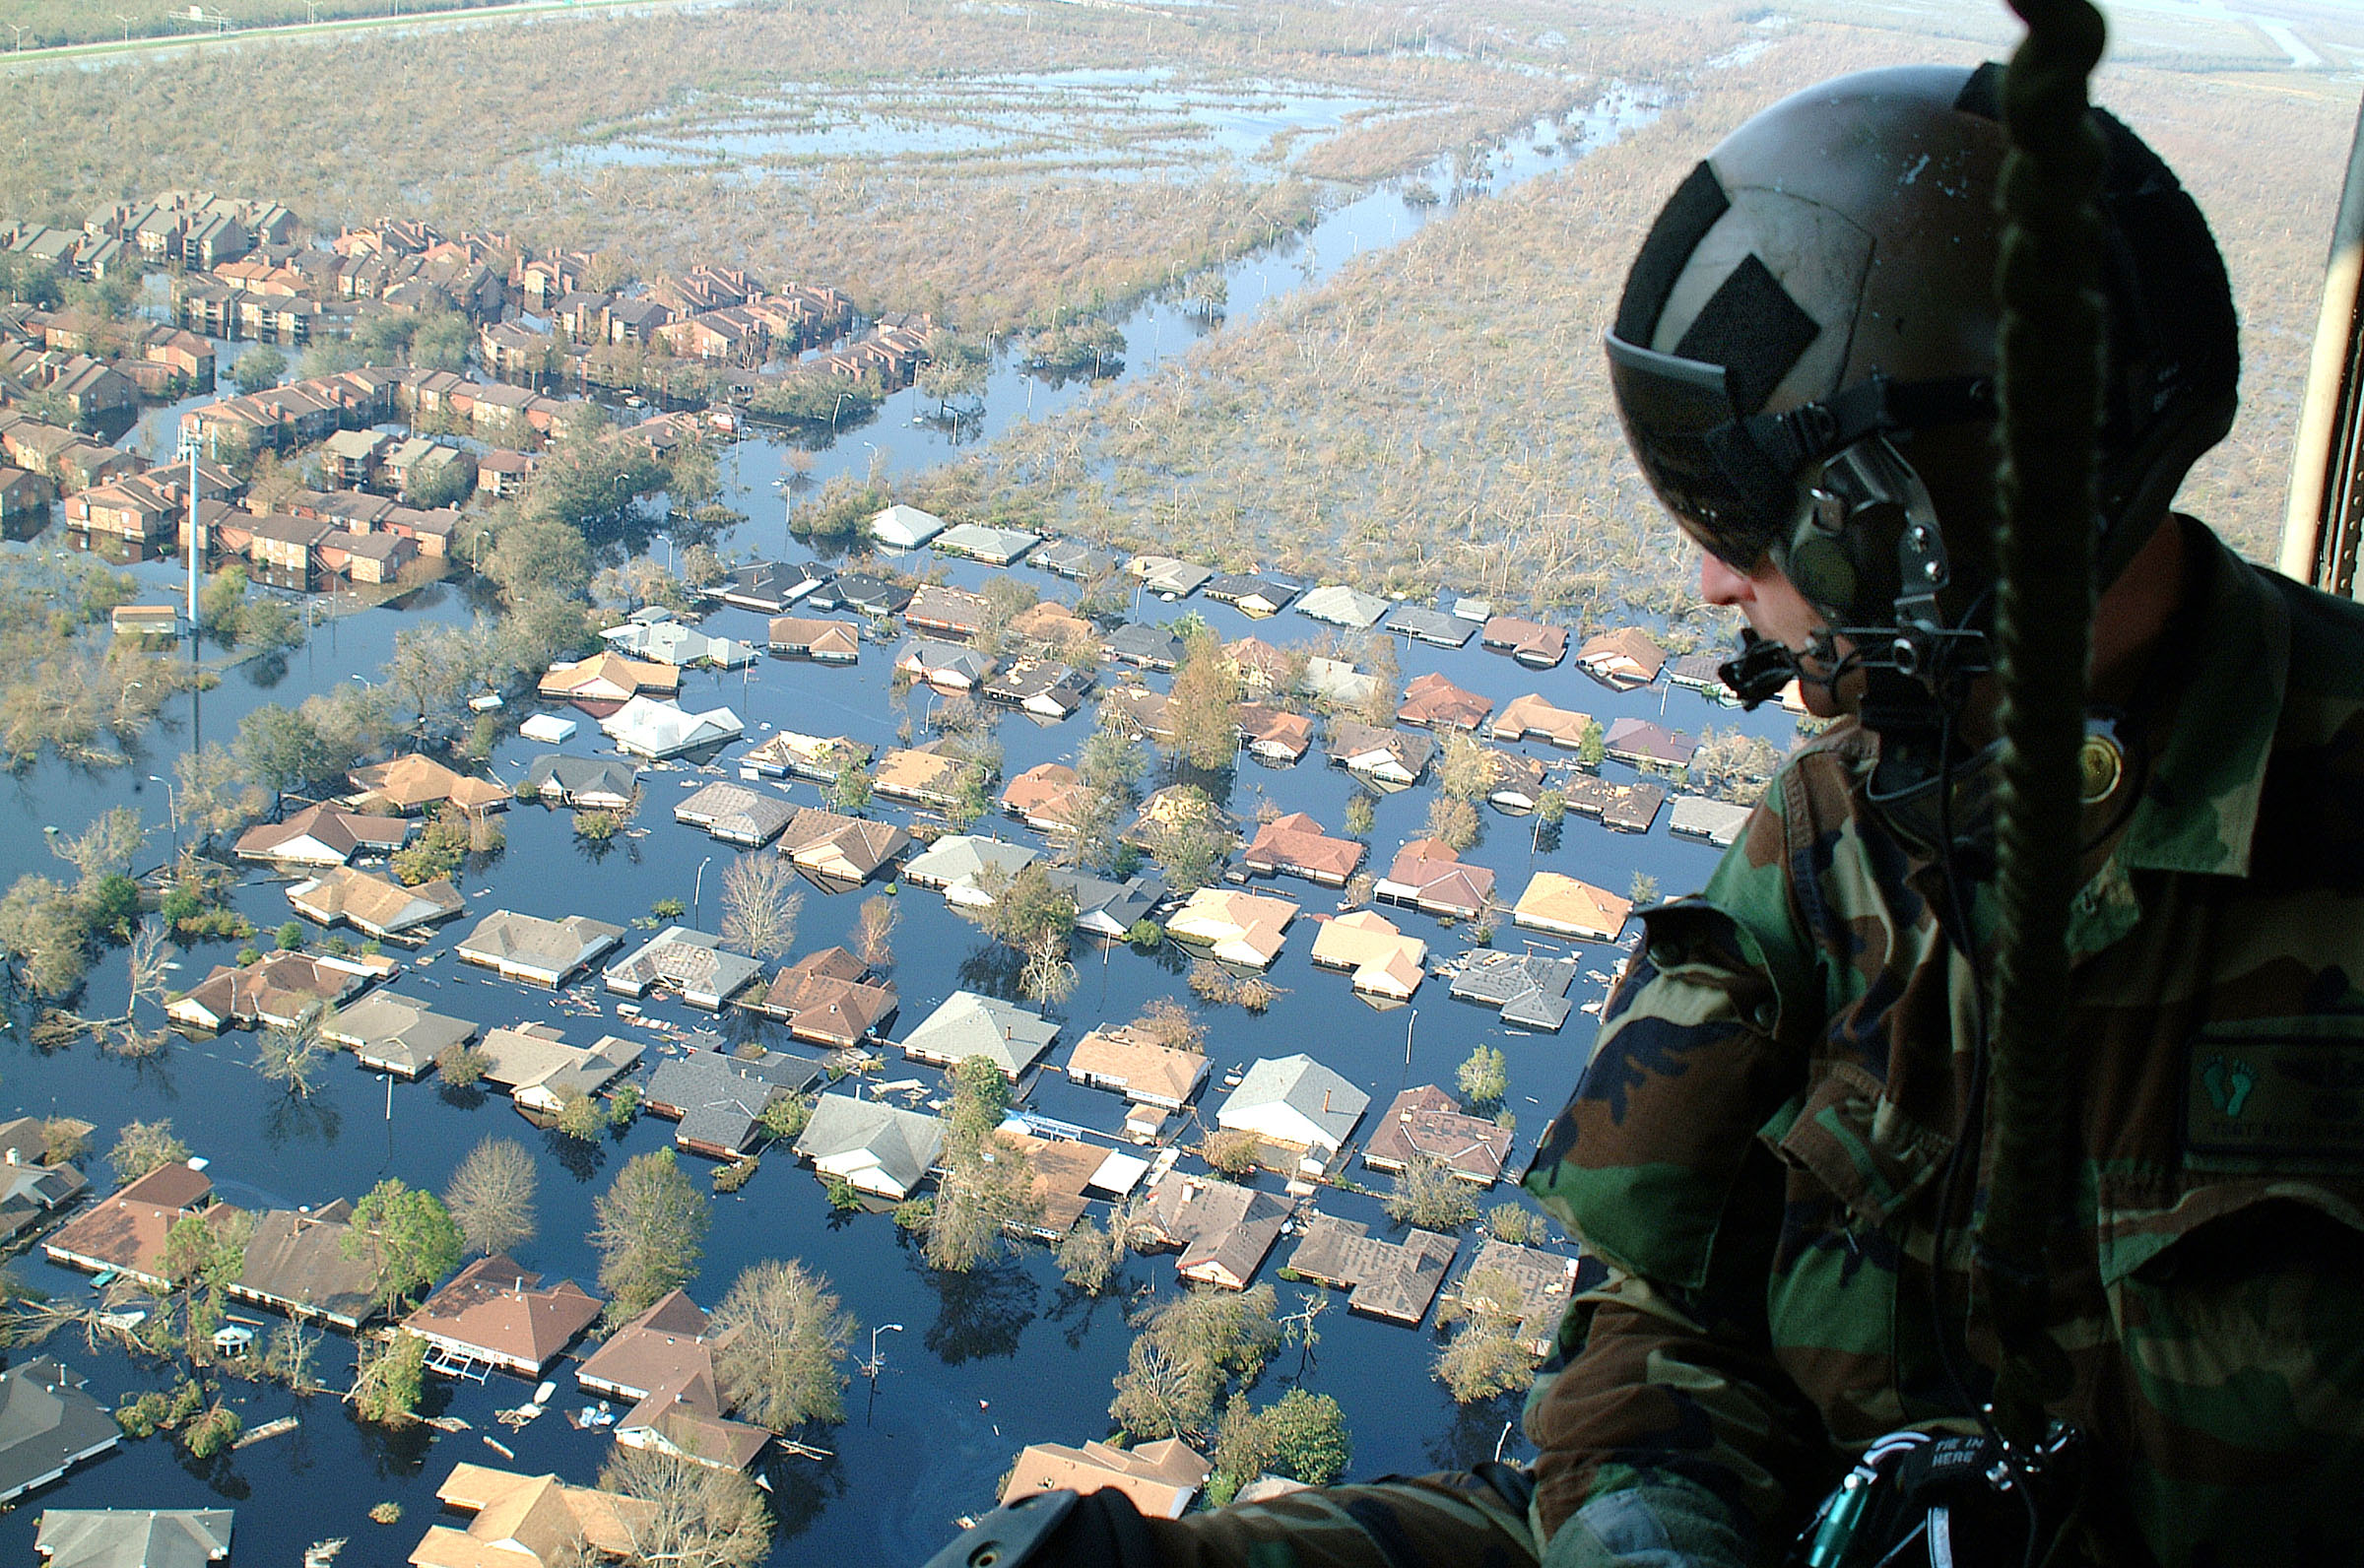 Flooding from Hurricane/Tropical Storm Barry in New Orleans area taken from National Guard rescue operations helicopter.